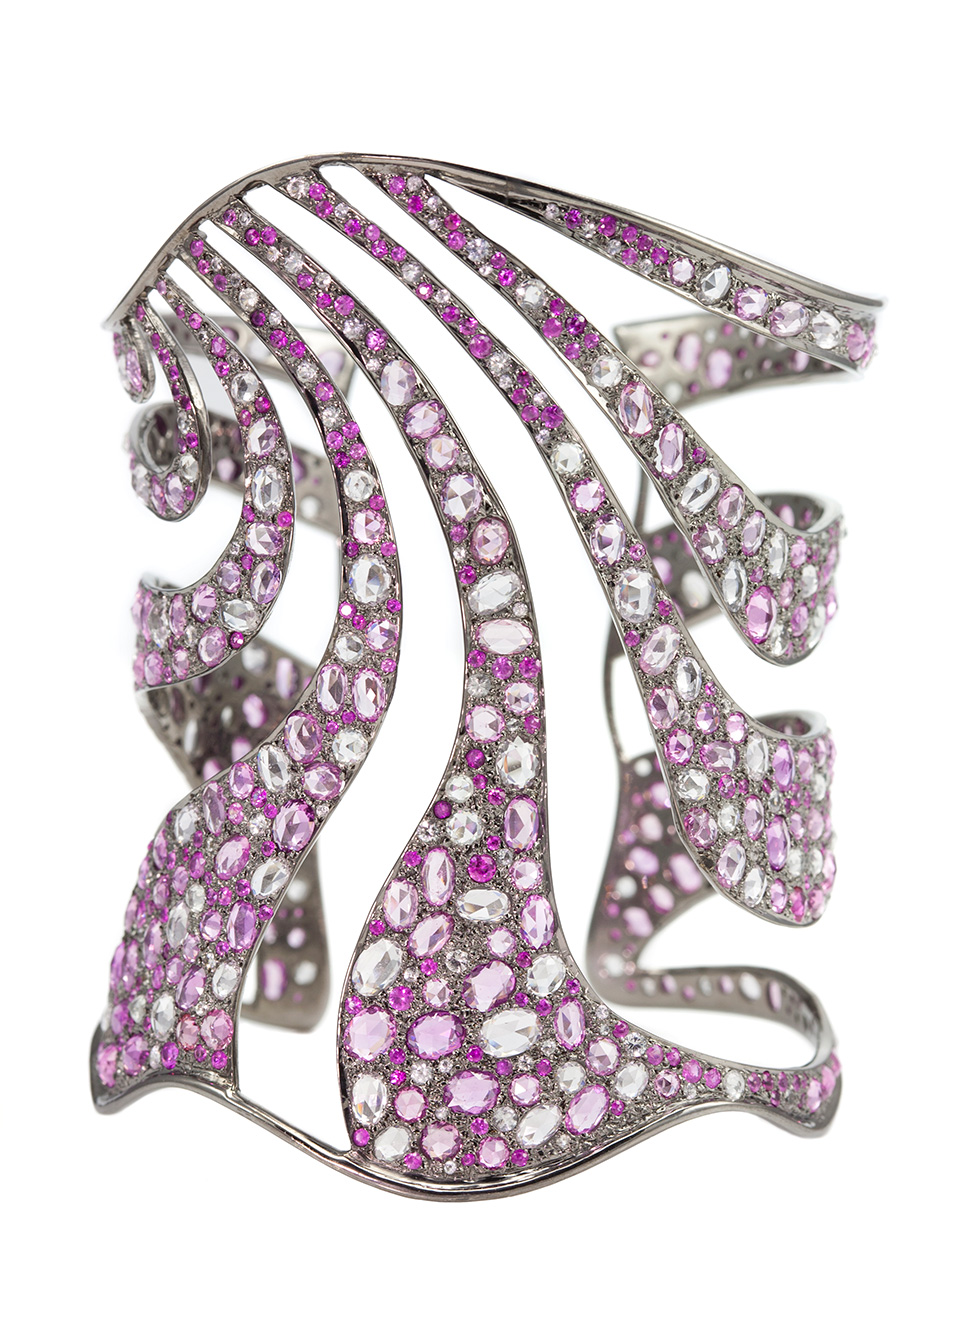 2013 Couture Design Award Winner for Colored Gemstones -  Empress Cuff in Pink Sapphires and Black Gold.jpg